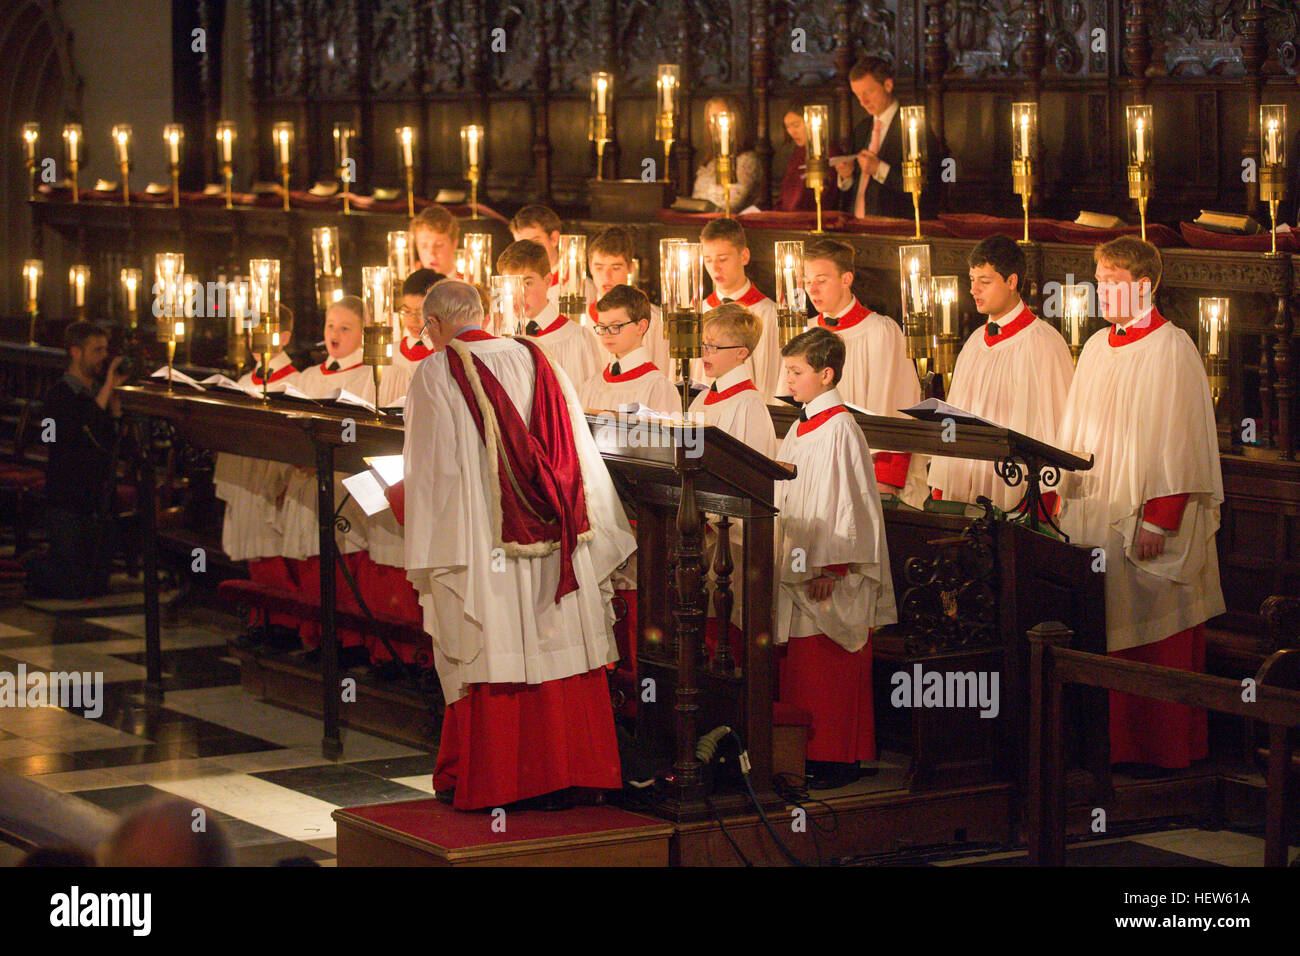 The Kings College Choir In Cambridge Rehearsing For Festival Of Nine Lessons And Carols Christmas Eve Service